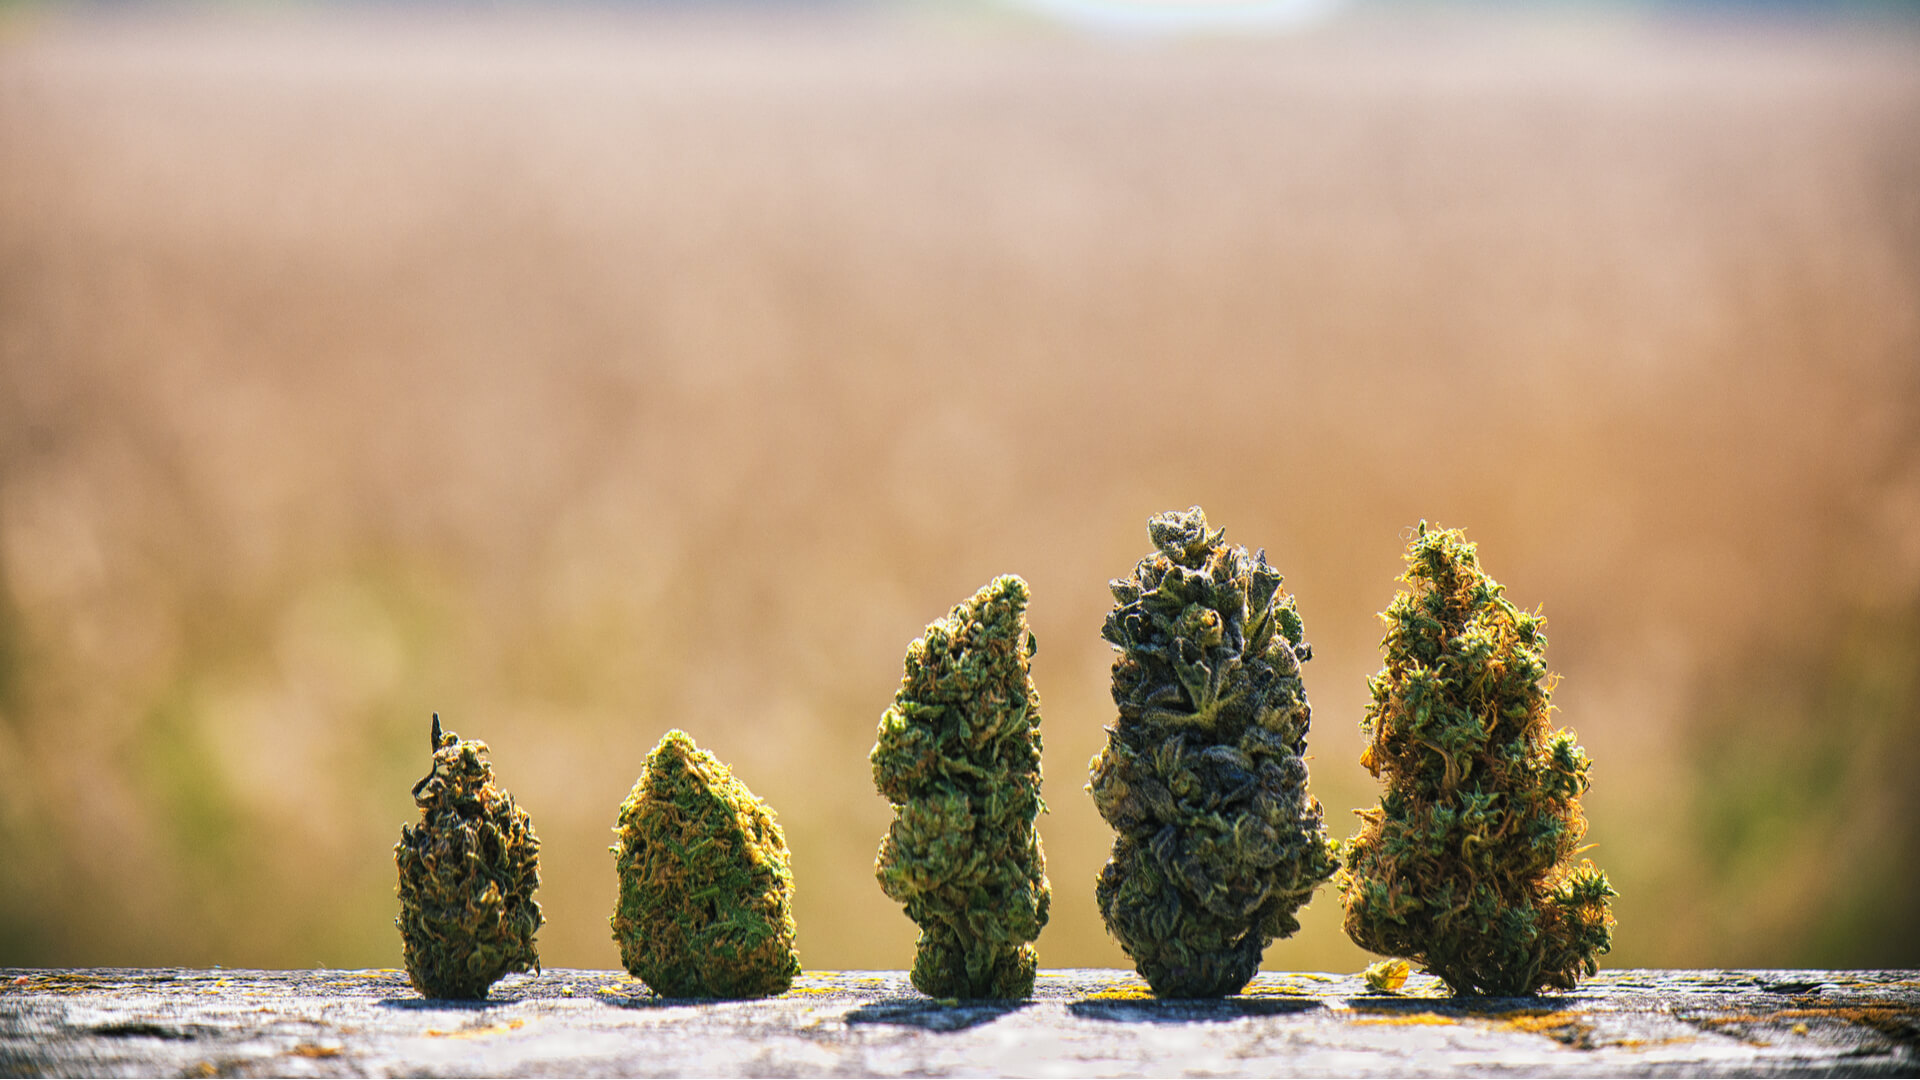 Detail of assored dried cannabis buds in a line over natural landscape